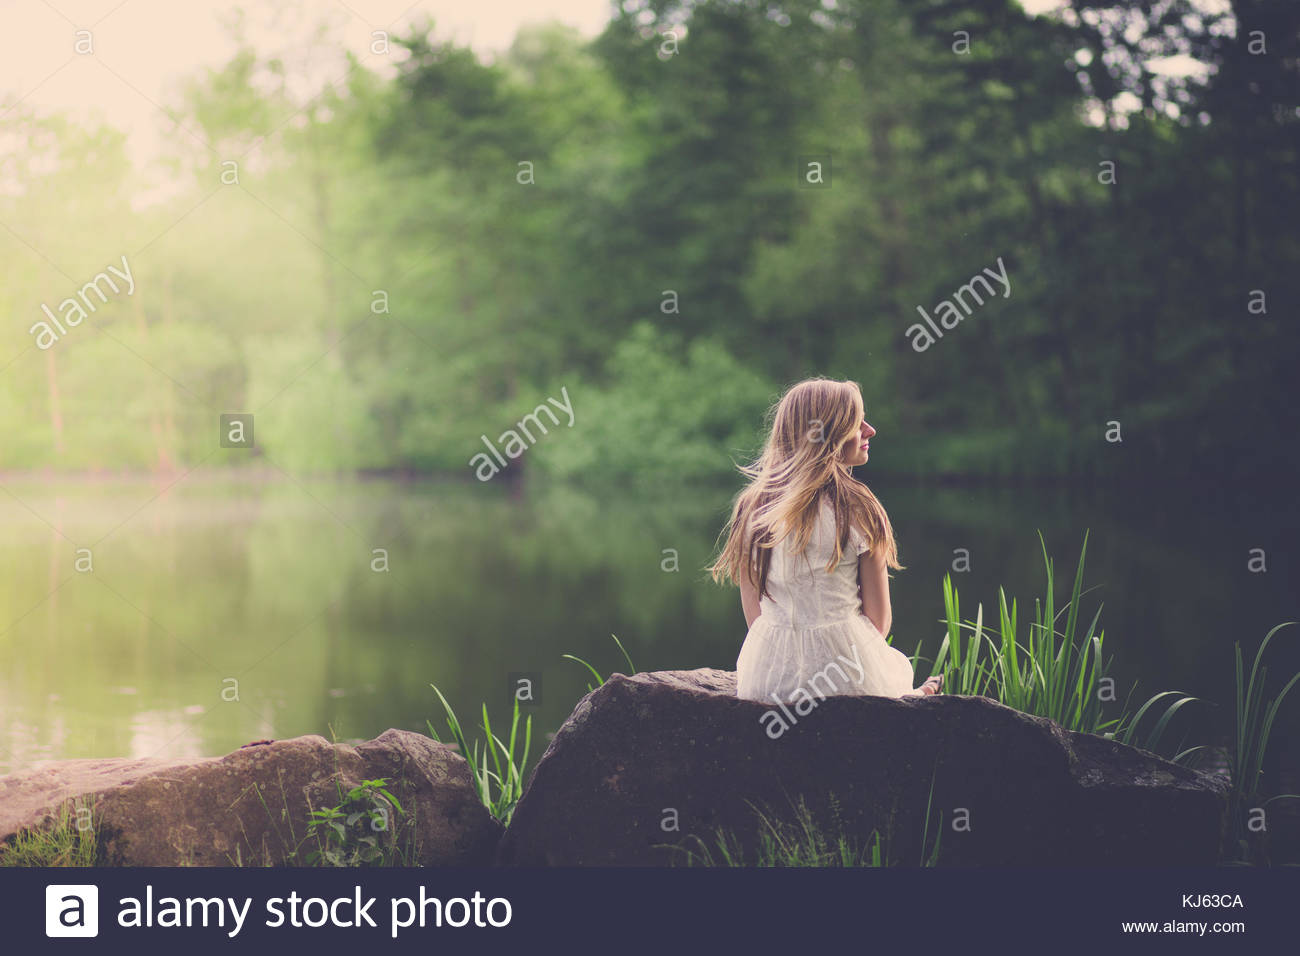 Blonde woman relaxes close to a pond - Stock Image